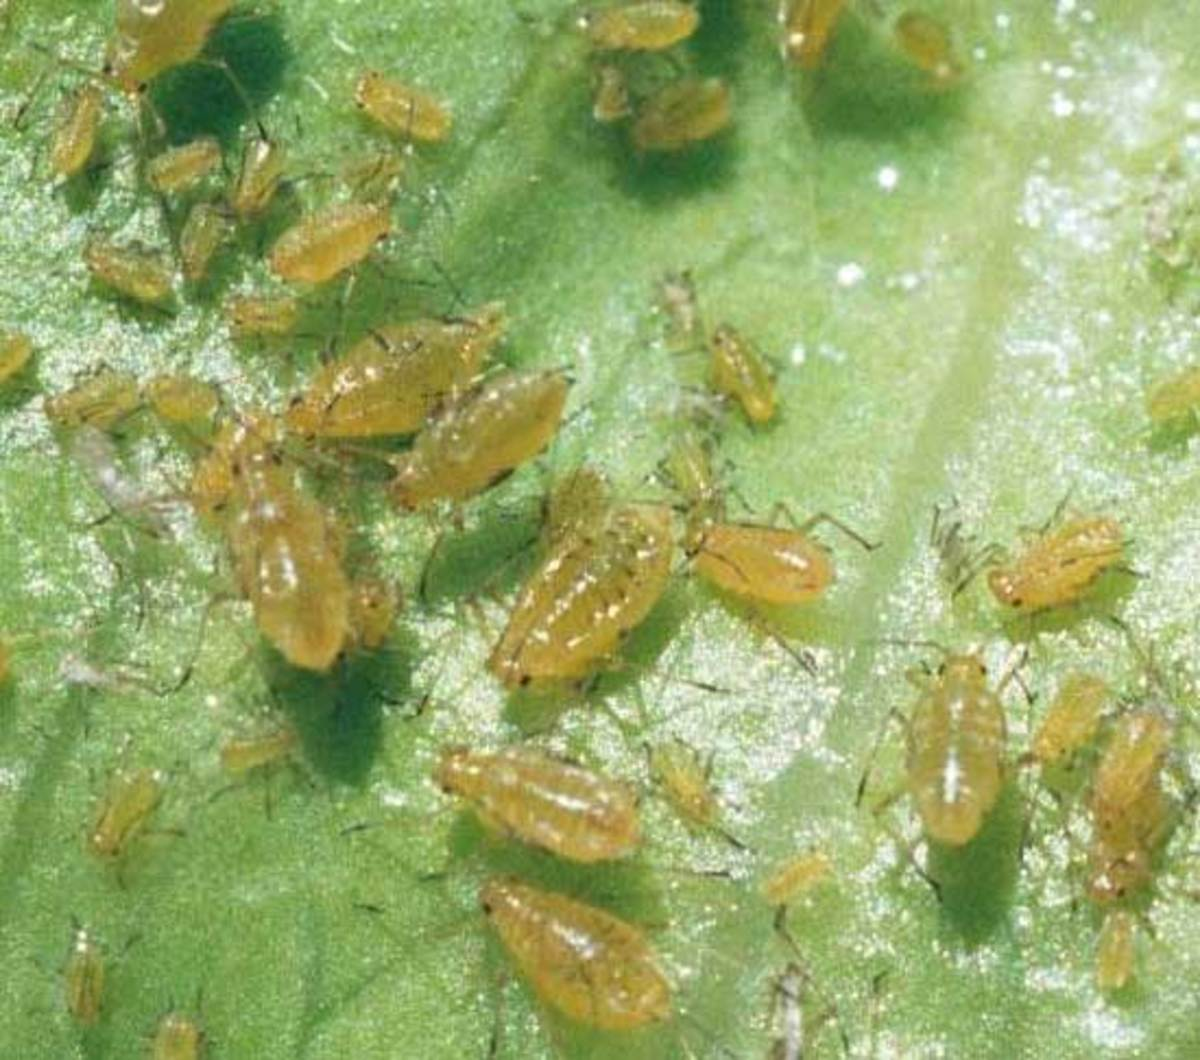 Aoot aphids. Confined chiefly to water lettuce. First symptoms are yellow and wilting leaves.